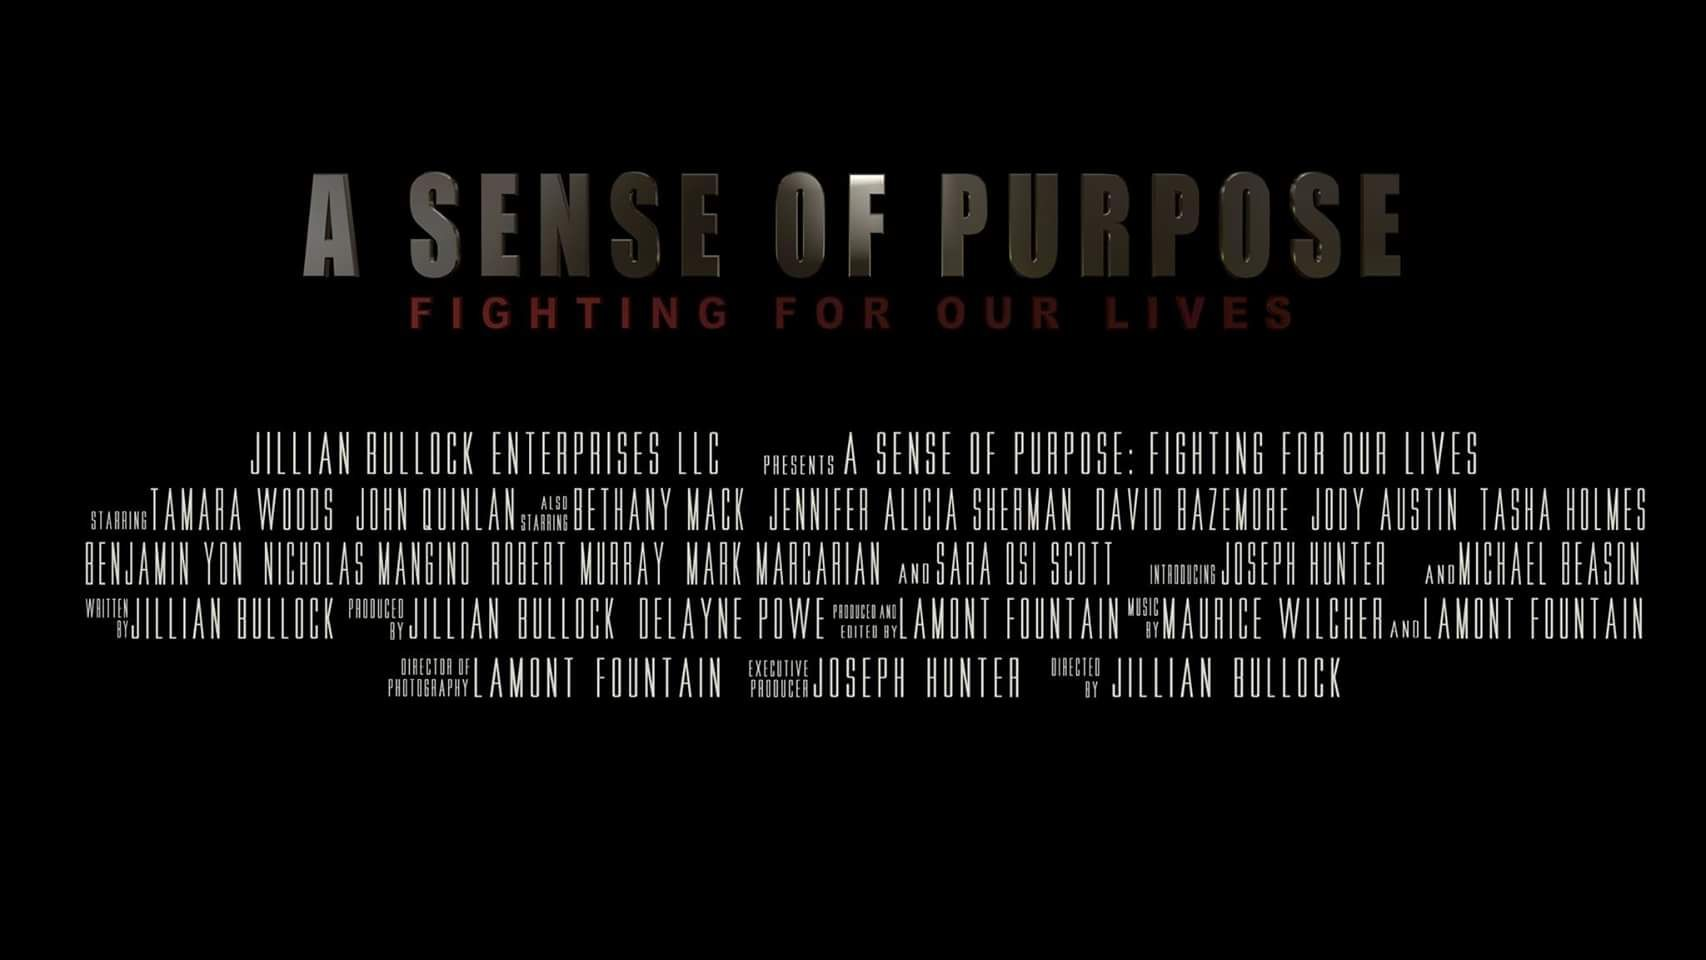 A Sense of Purpose Fighting For Our Lives - Tamara Woods & John Quinlan by Jillian Bullock #JohnQuinlan